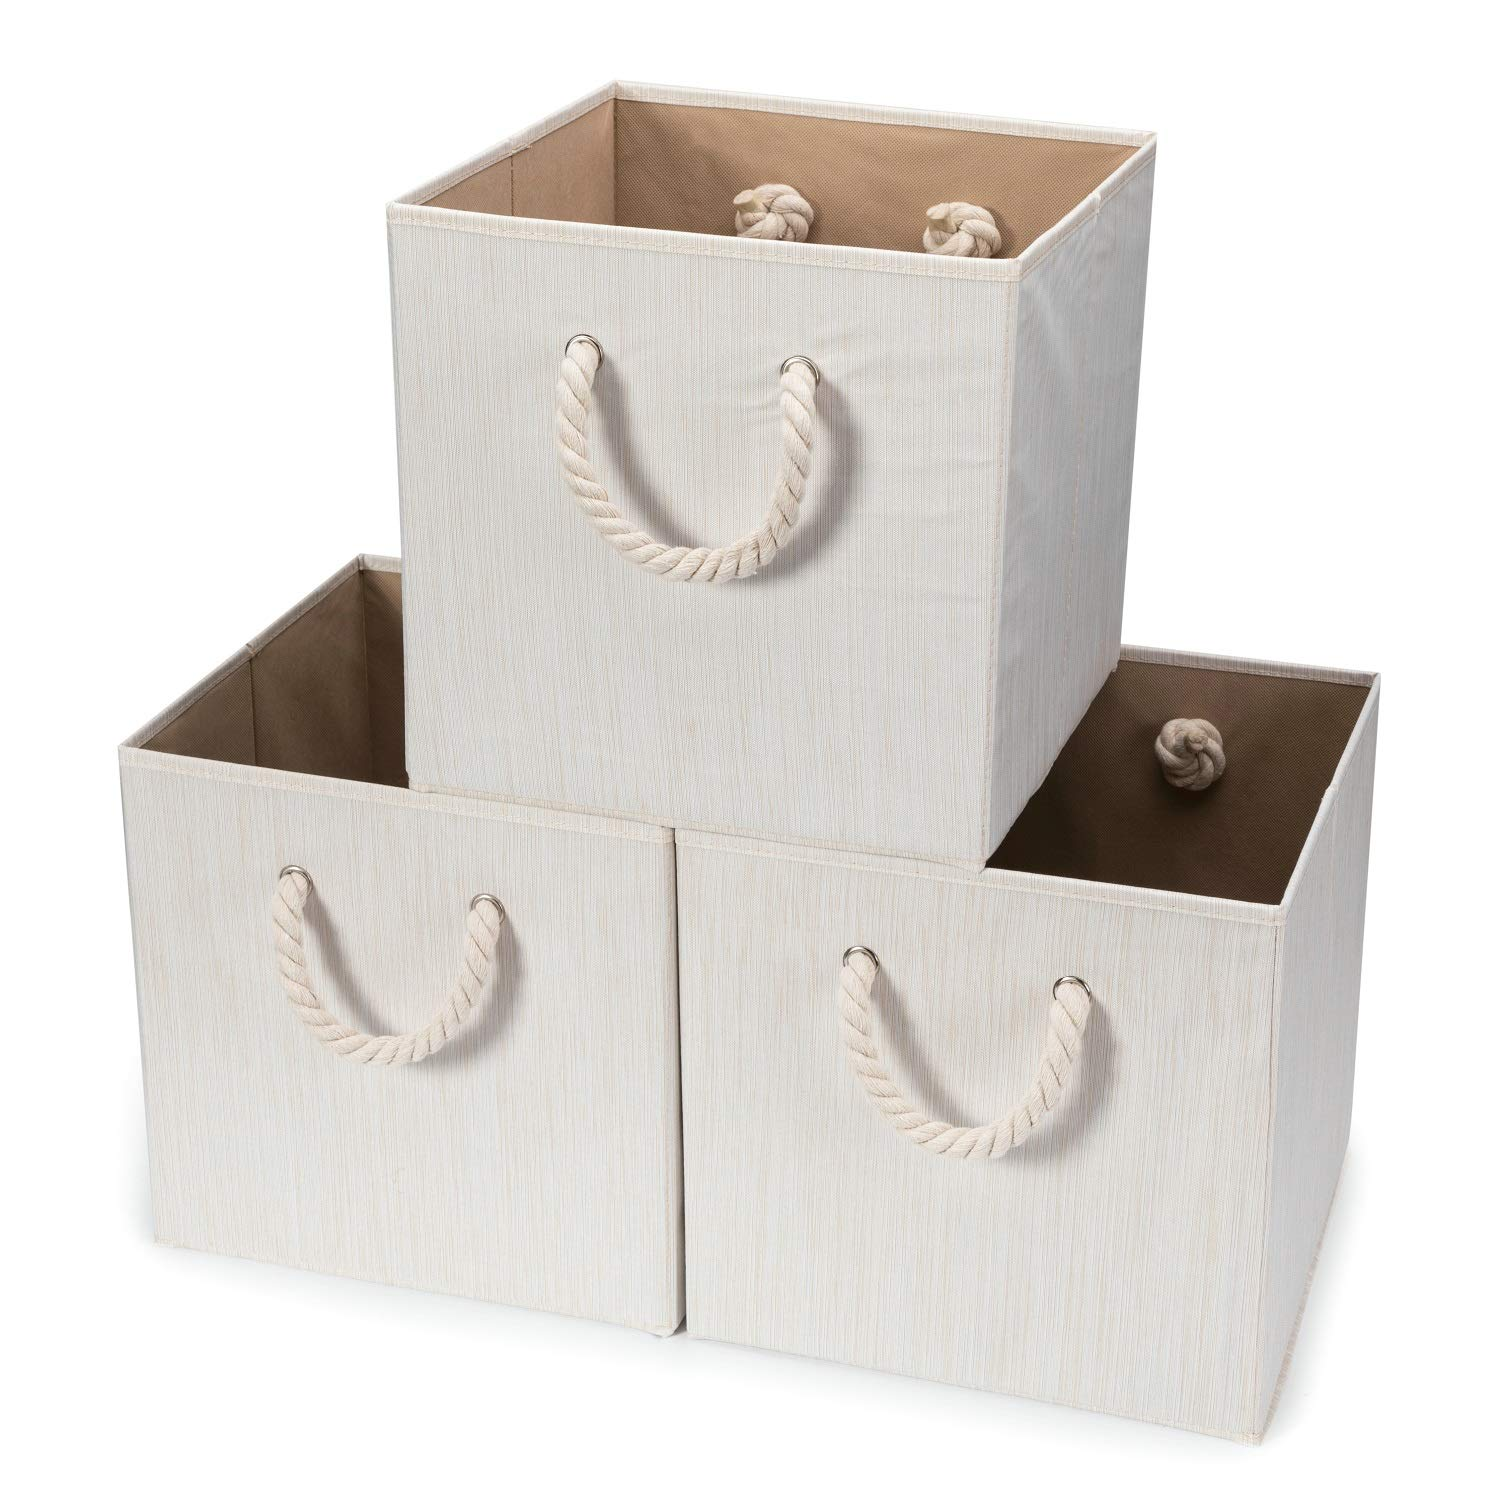 Hadioo 3 Pack Foldable Bamboo Fabric Storage Bins for Cube Organizer with Cotton Rope Handles, Collapsible Basket Box Organizer for Shelves and Closet- Beige 13x13x13 inch